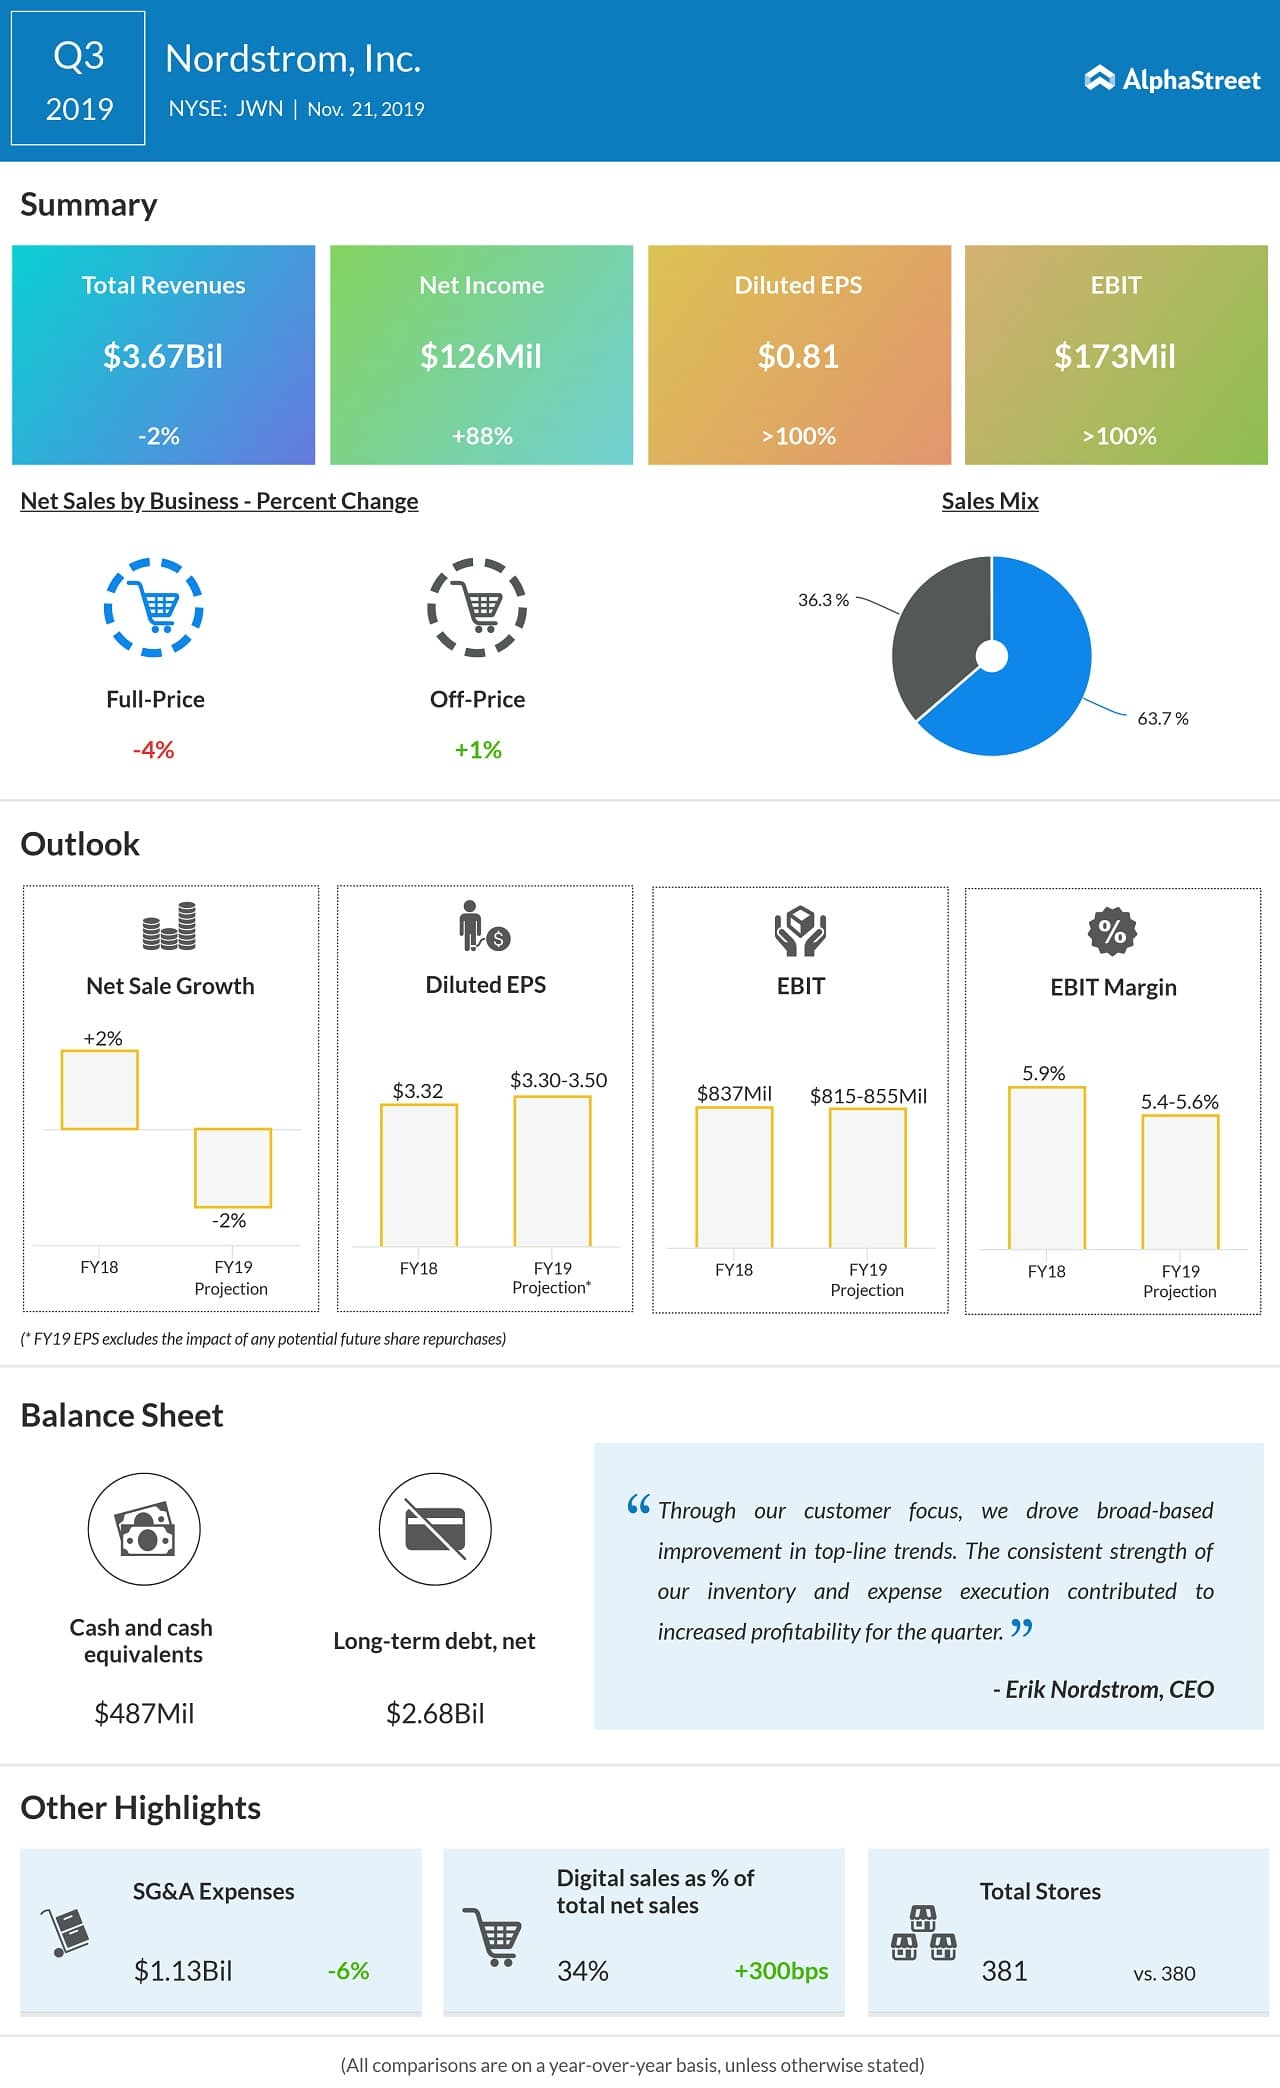 nordstrom Q3 2019 earnings ig